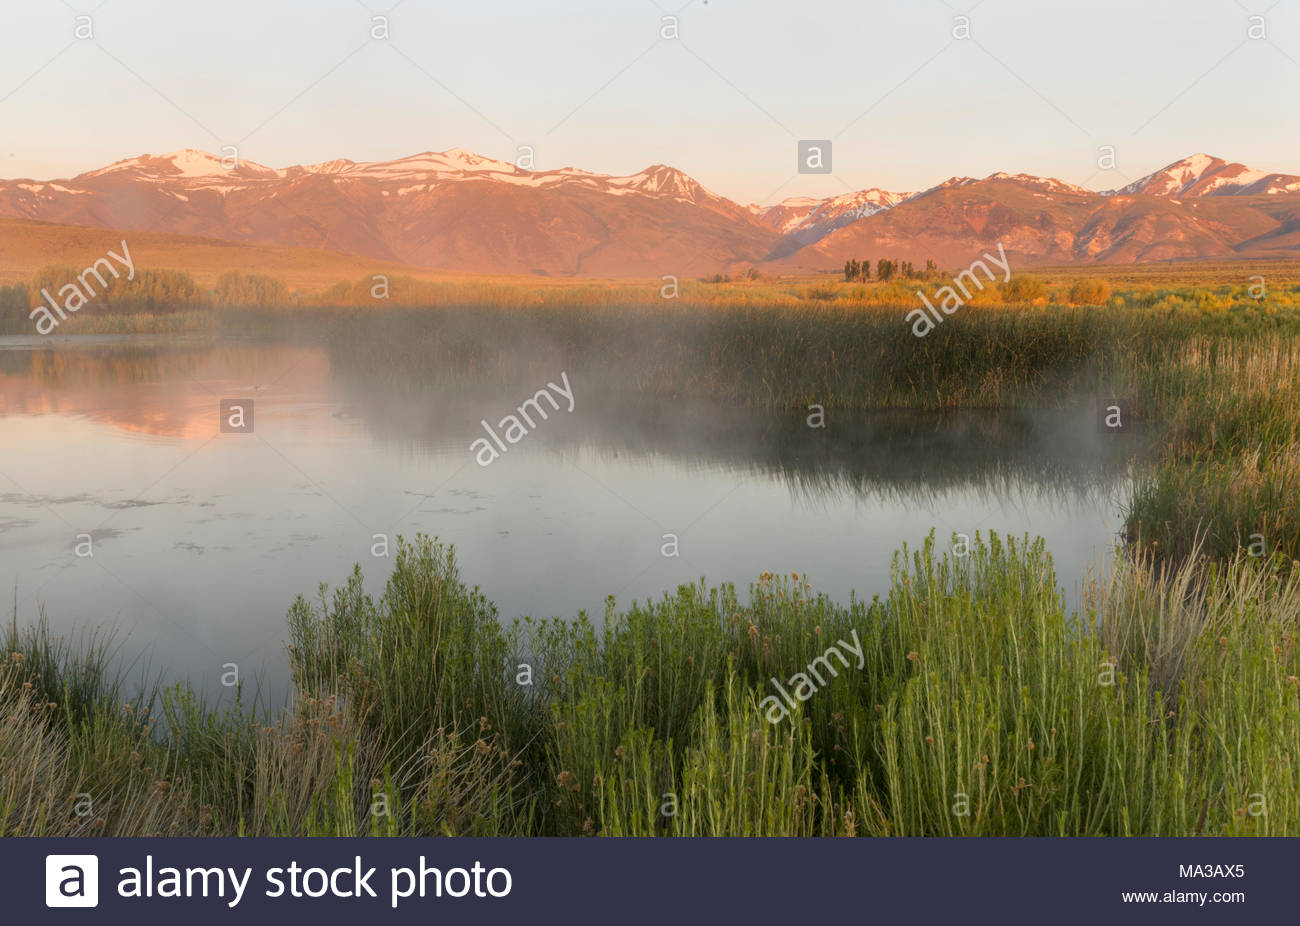 Hot Springs and Dechambeau Ponds at Dawn, Mono Basin National Forest Scenic Area, California - Stock Image